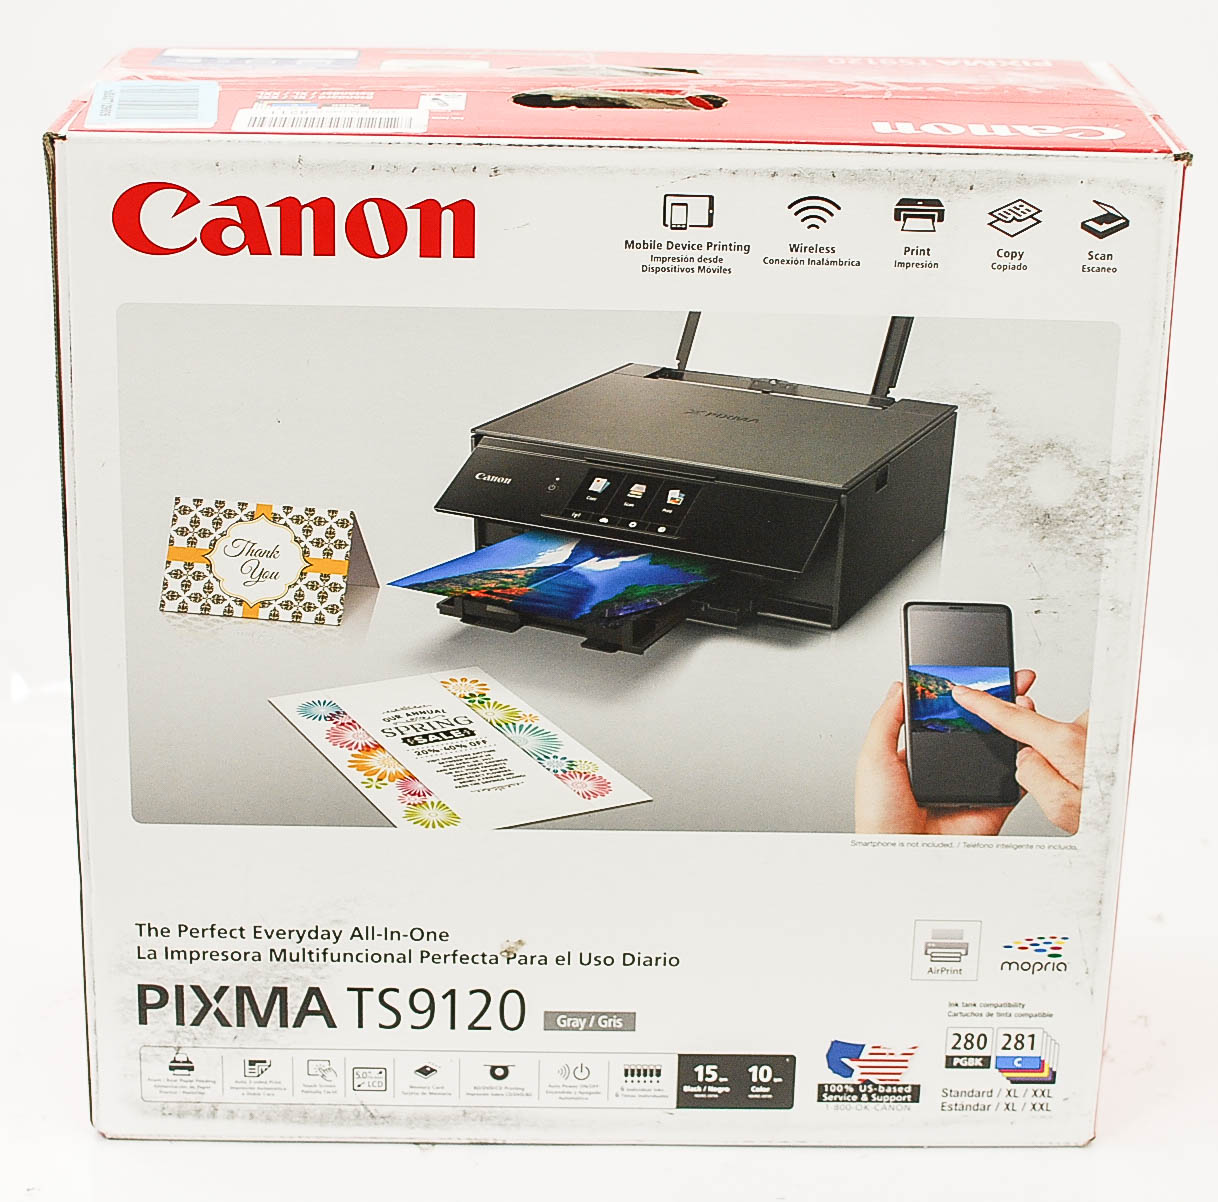 Details about Canon TS9120 Wireless All-in-1 Printer-Scanner-Copier,  Mobile-Tablet Print